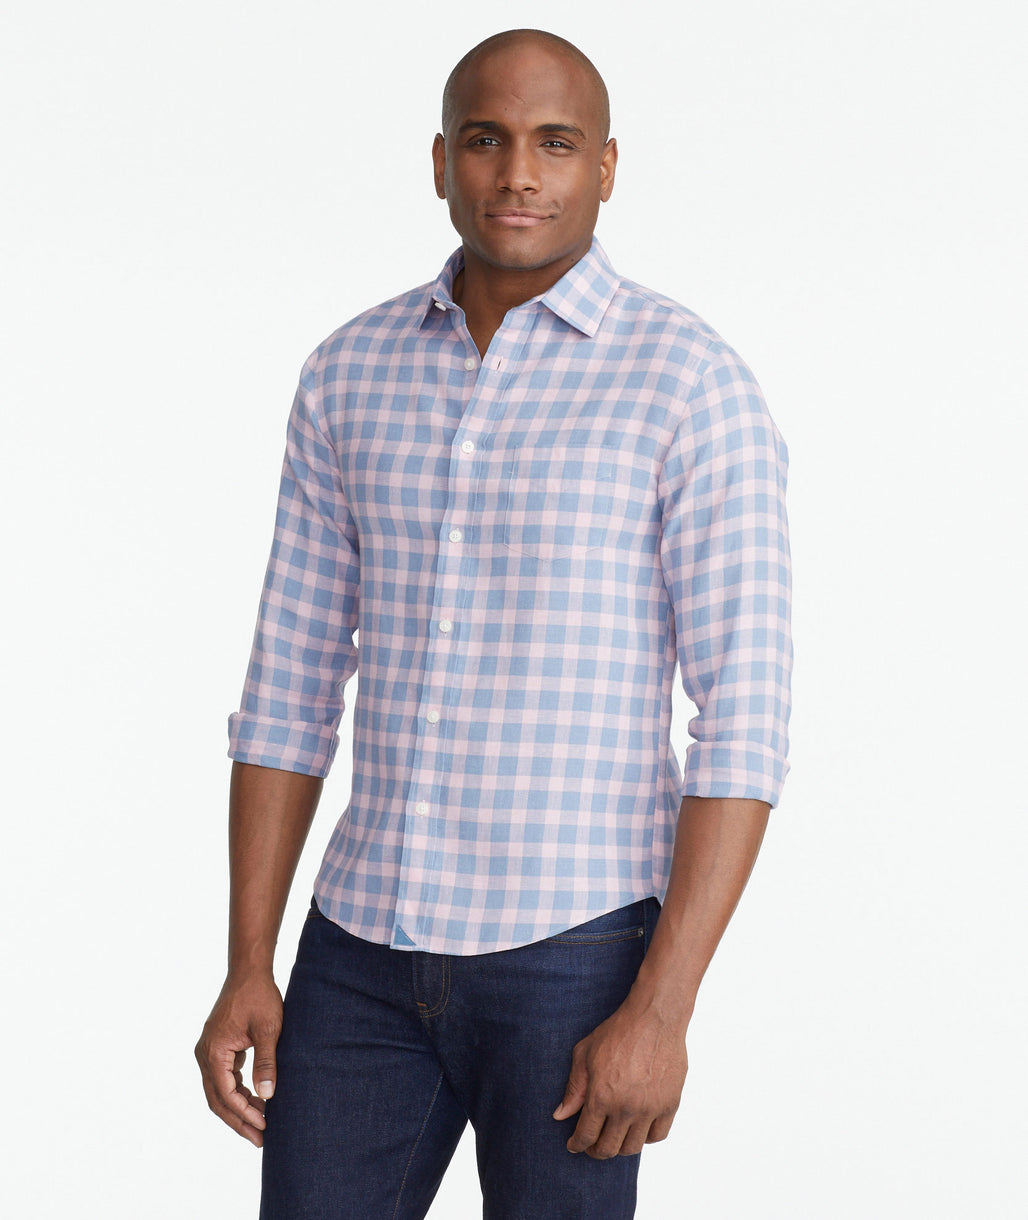 Model wearing a Pink Wrinkle-Free Sutton Shirt